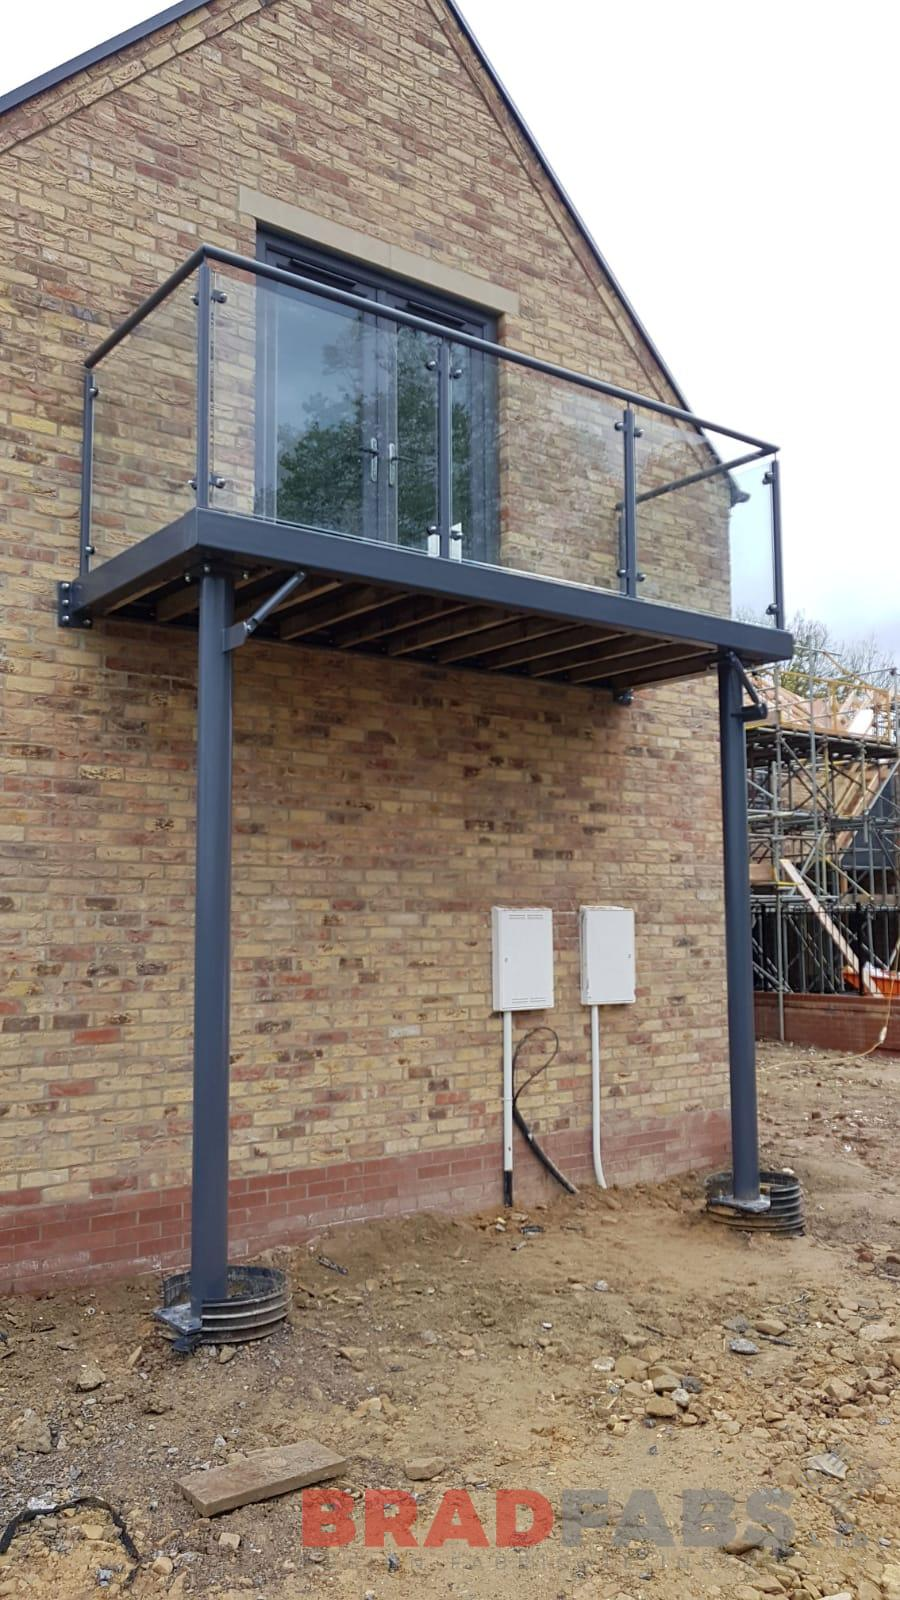 Bespoke balcony manufactured in mild steel, galvanised and powder coated grey, with two support legs, glass infill panels and composite decked flooring by Bradfabs